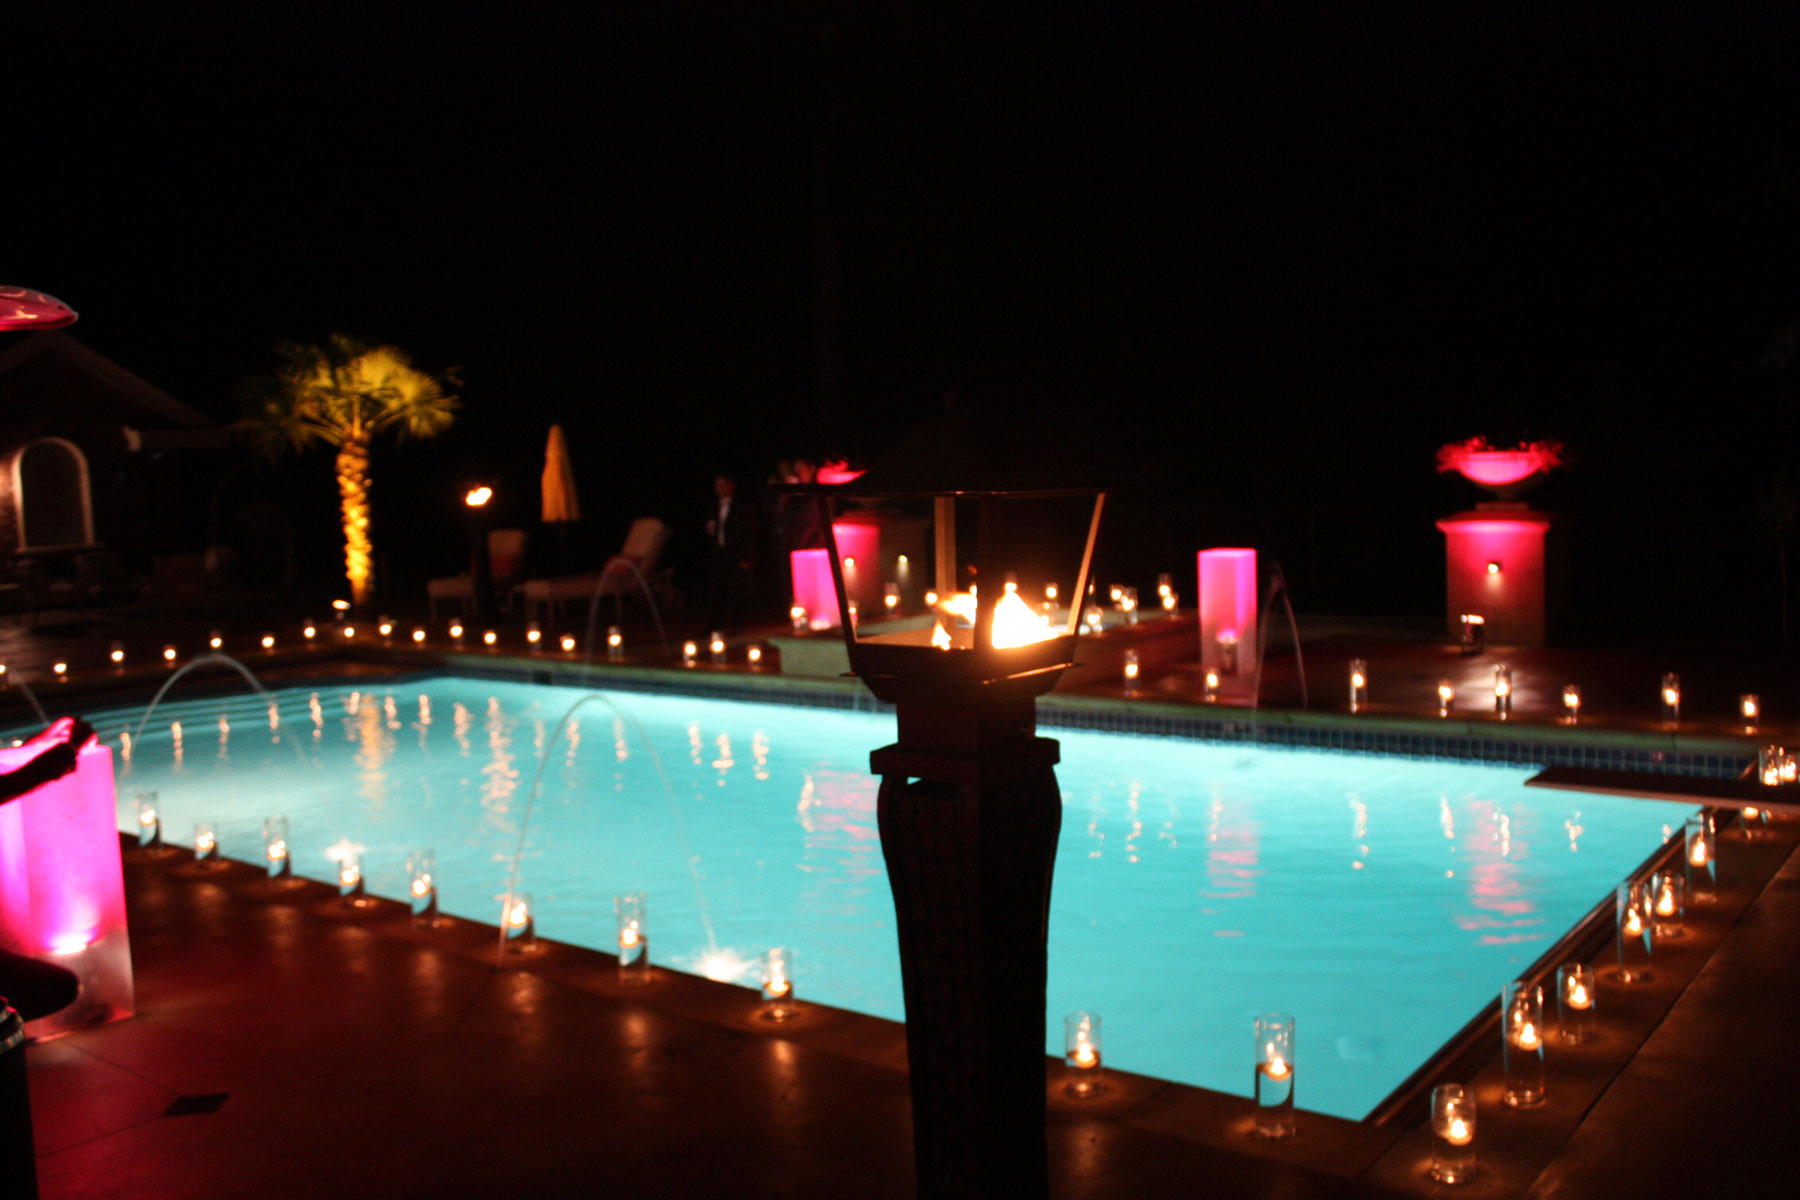 private-residence-pool party - house party vancouver - pool ambience - candles - lighting - penthouse party - uplighting - home decor - private party